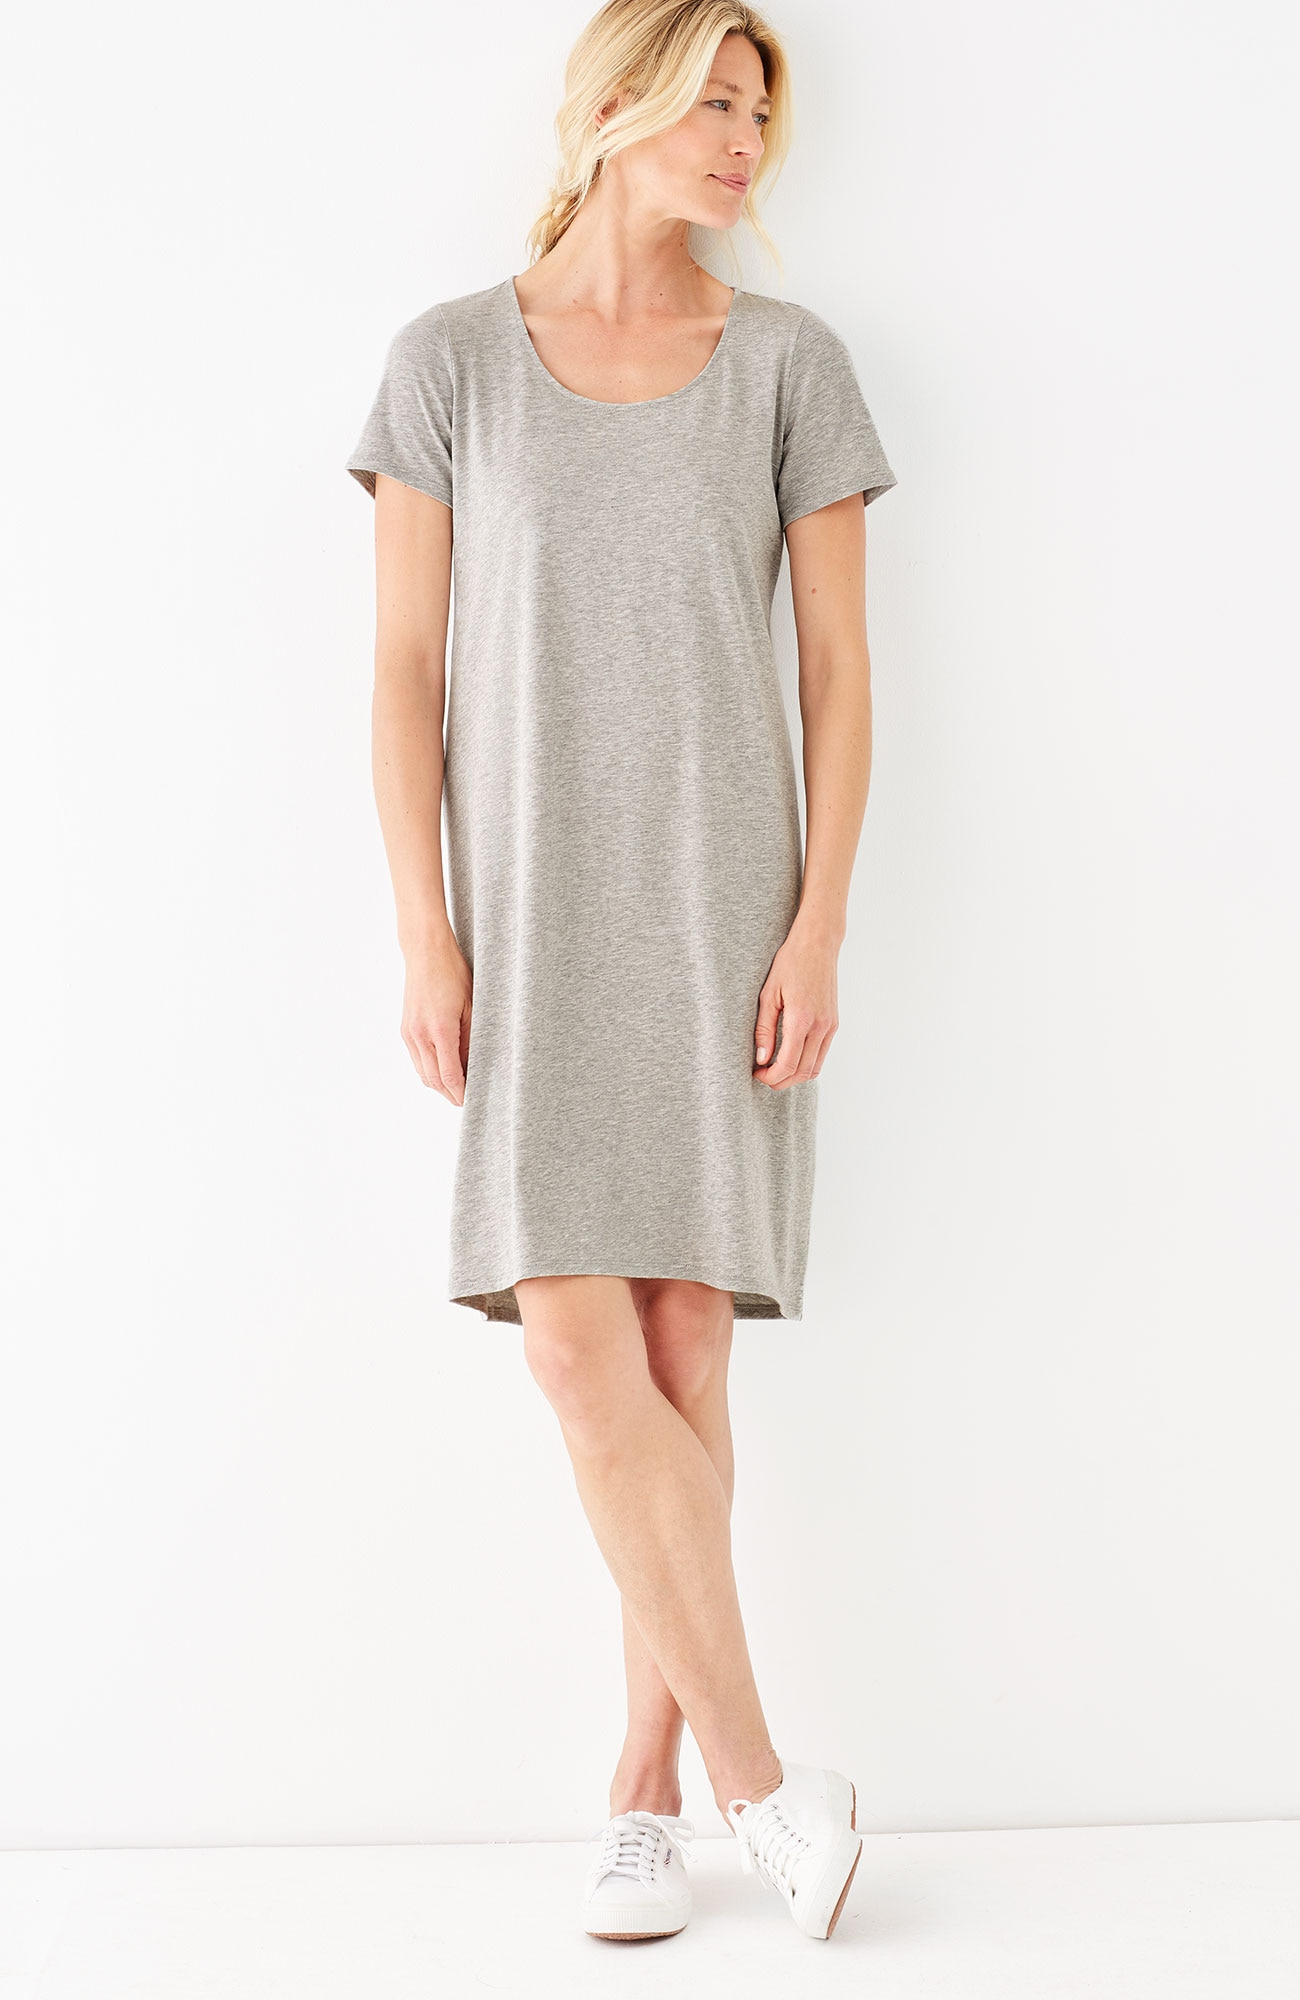 Pure Jill A-line elliptical dress